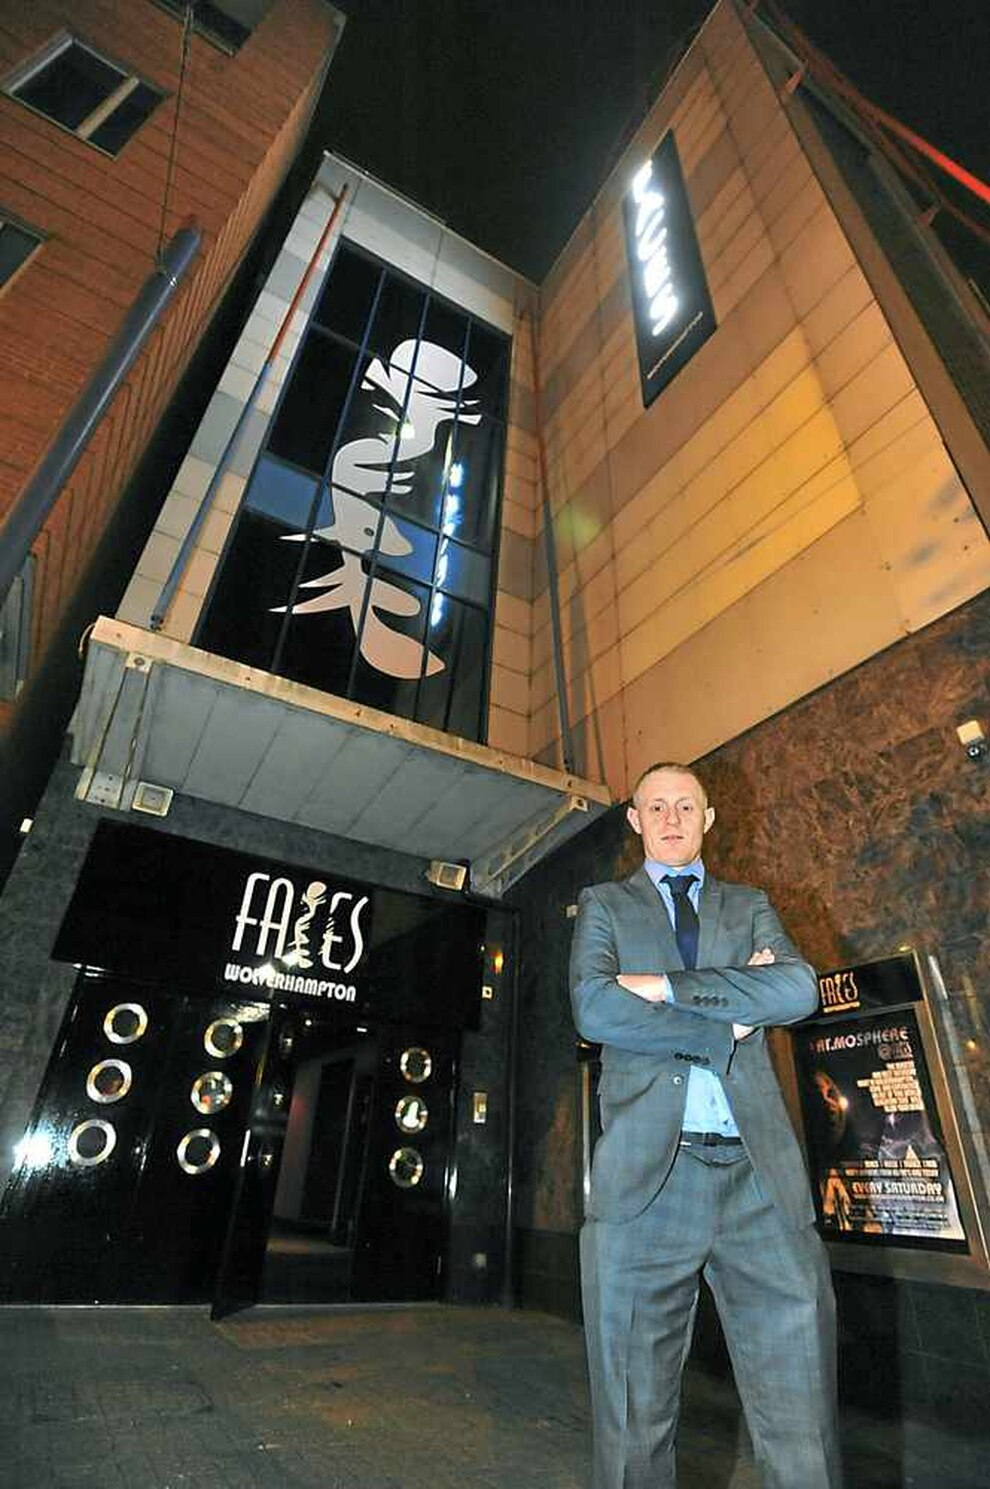 Big Turnout In Tunisia >> Revamped Faces nightclub opens in Wolverhampton | Express & Star